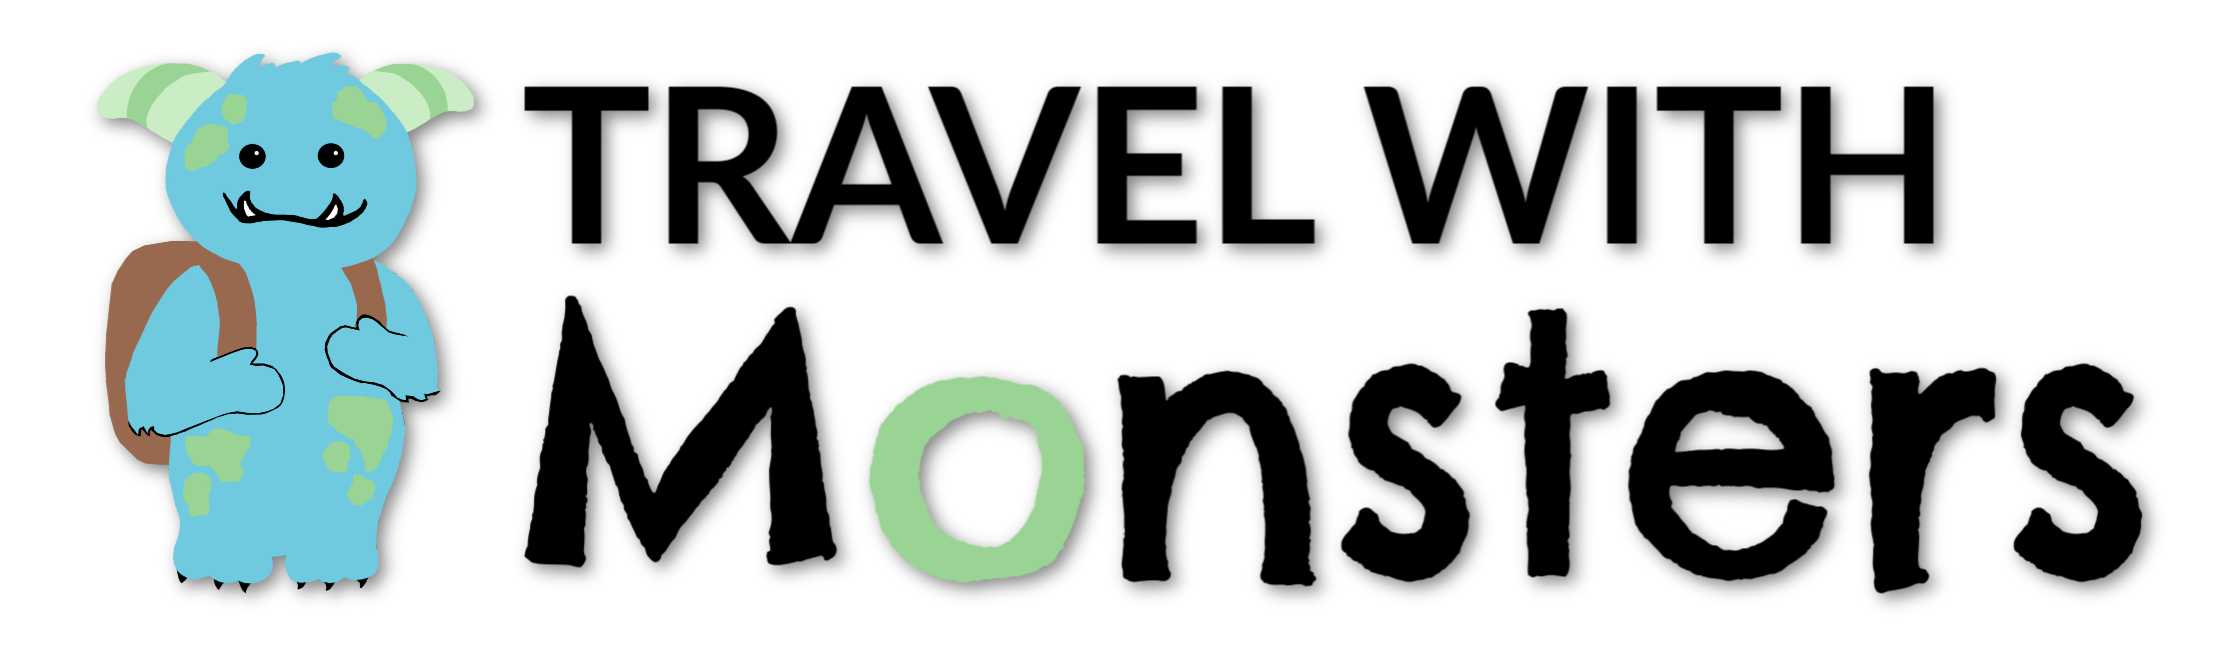 Travel with Monsters